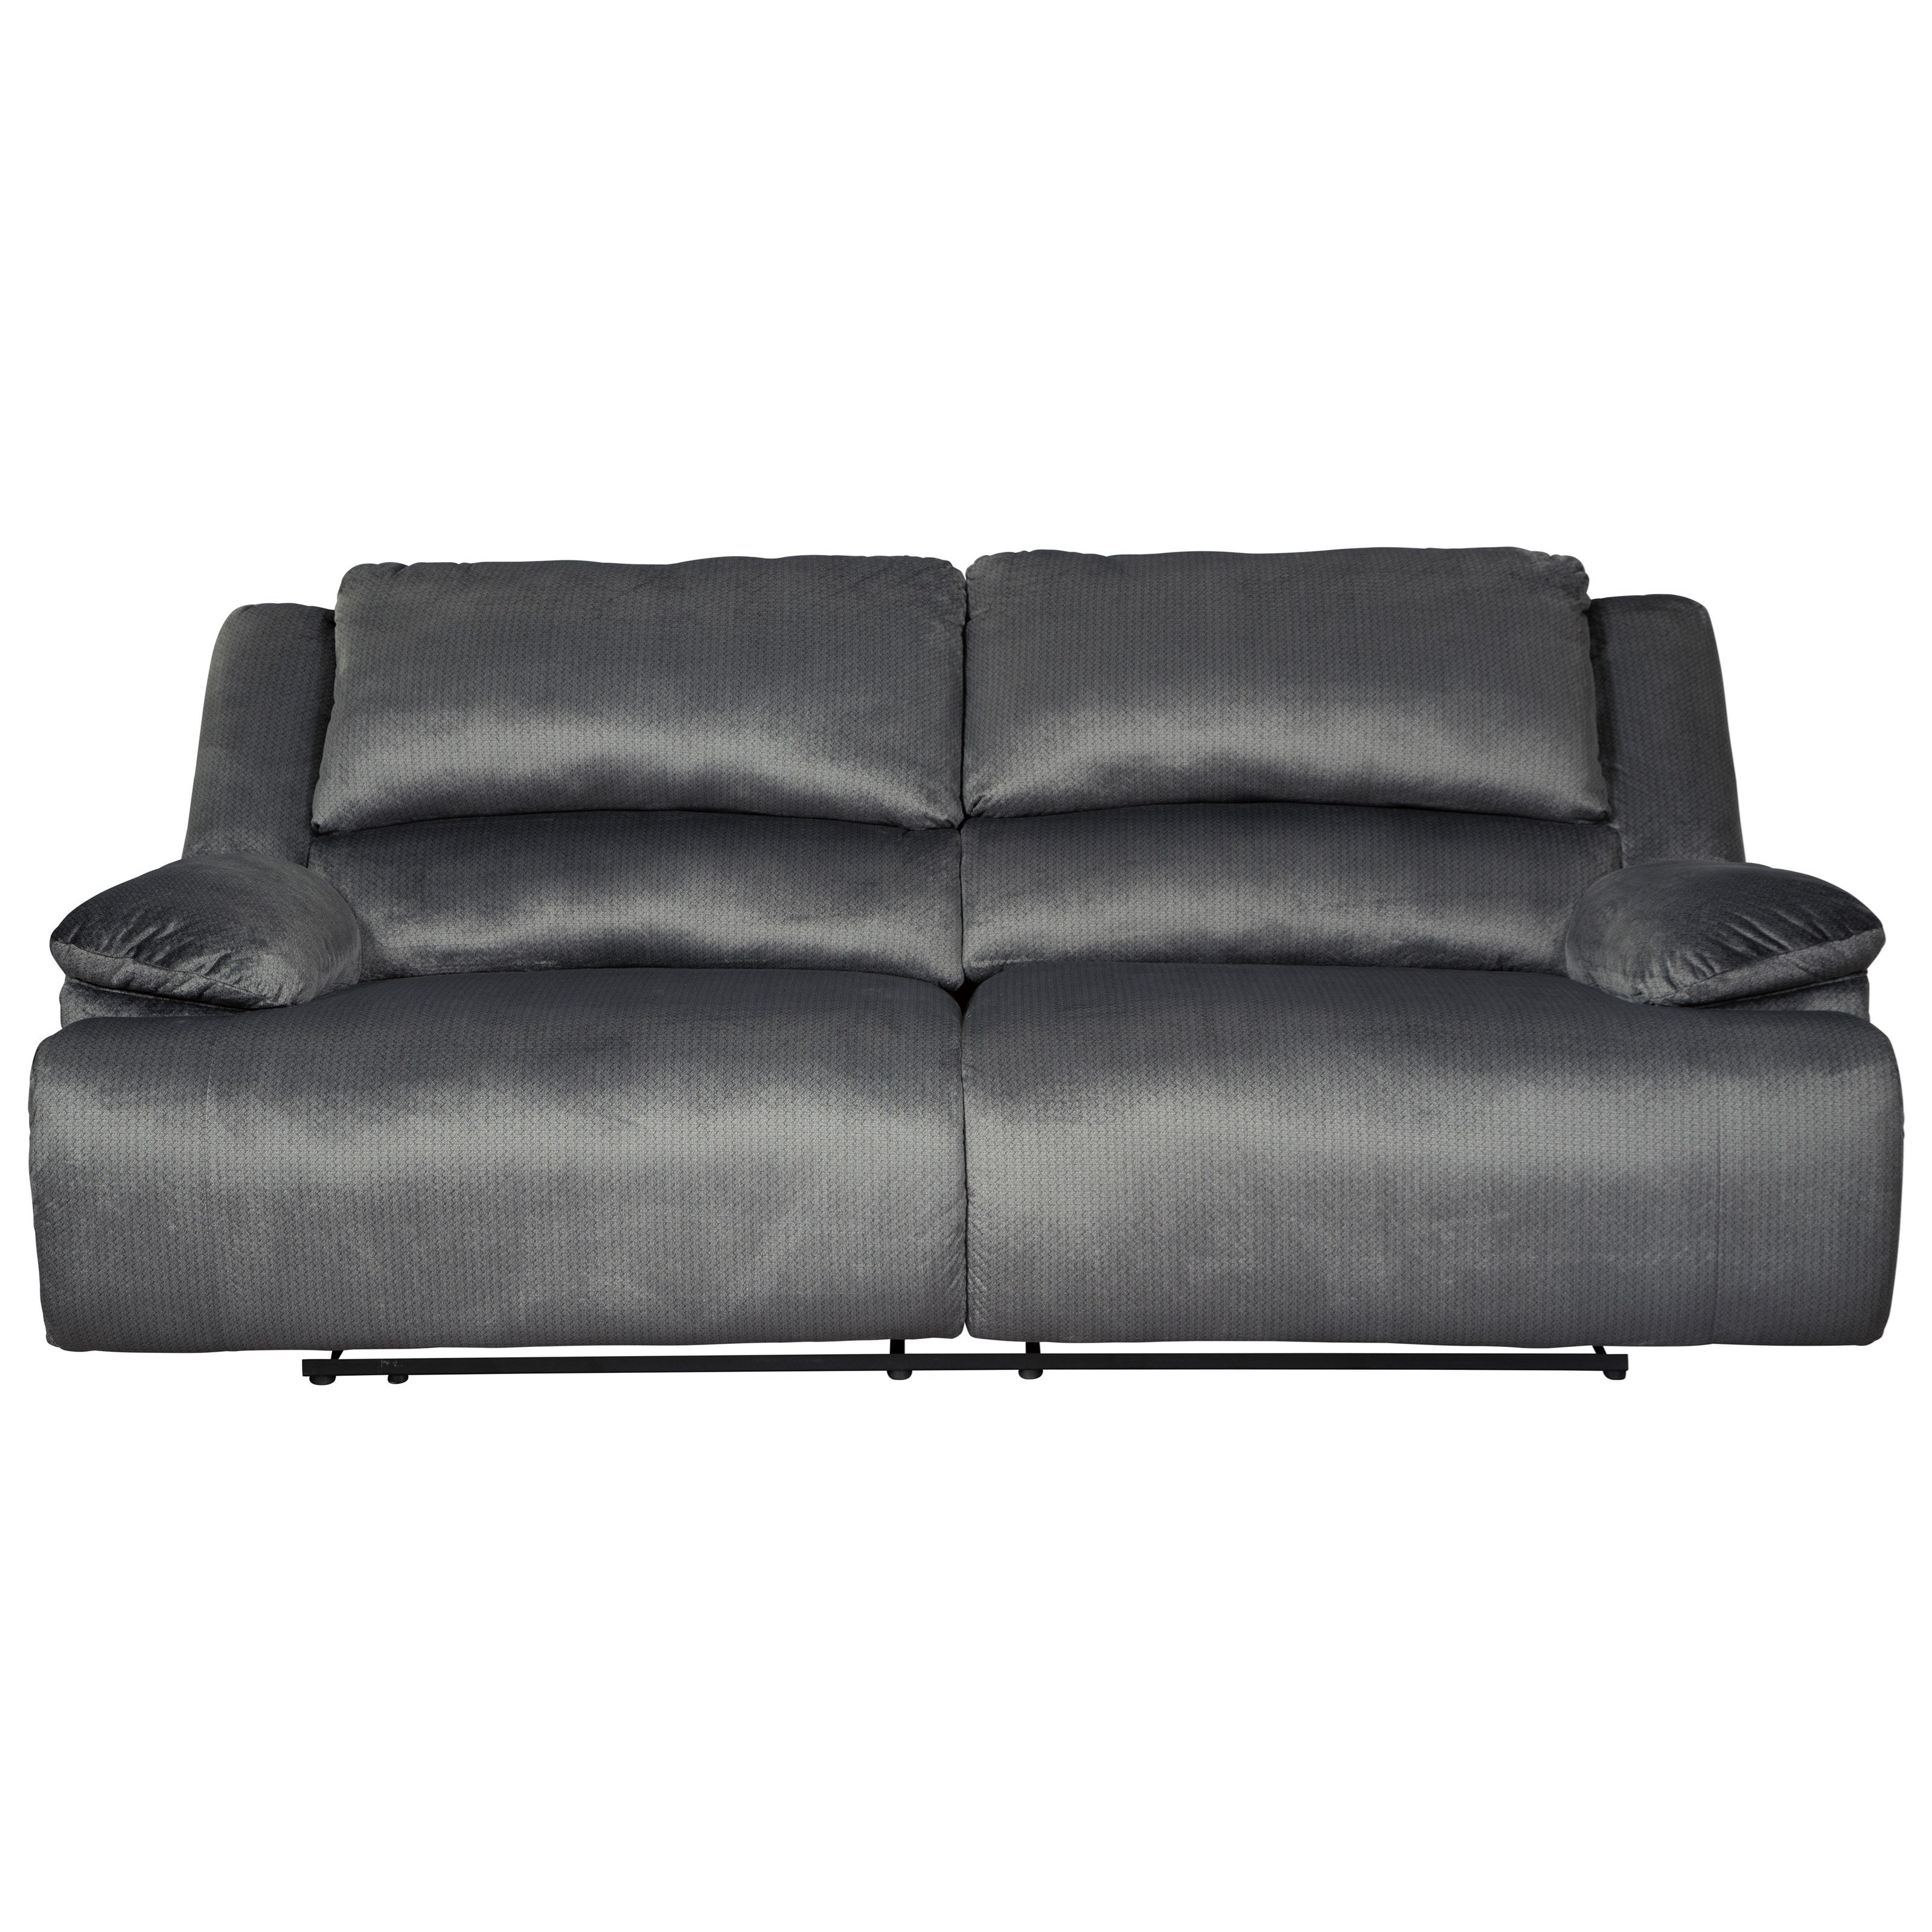 Clonmel 2 Seat Reclining Sofa by Signature Design by Ashley at Furniture Barn